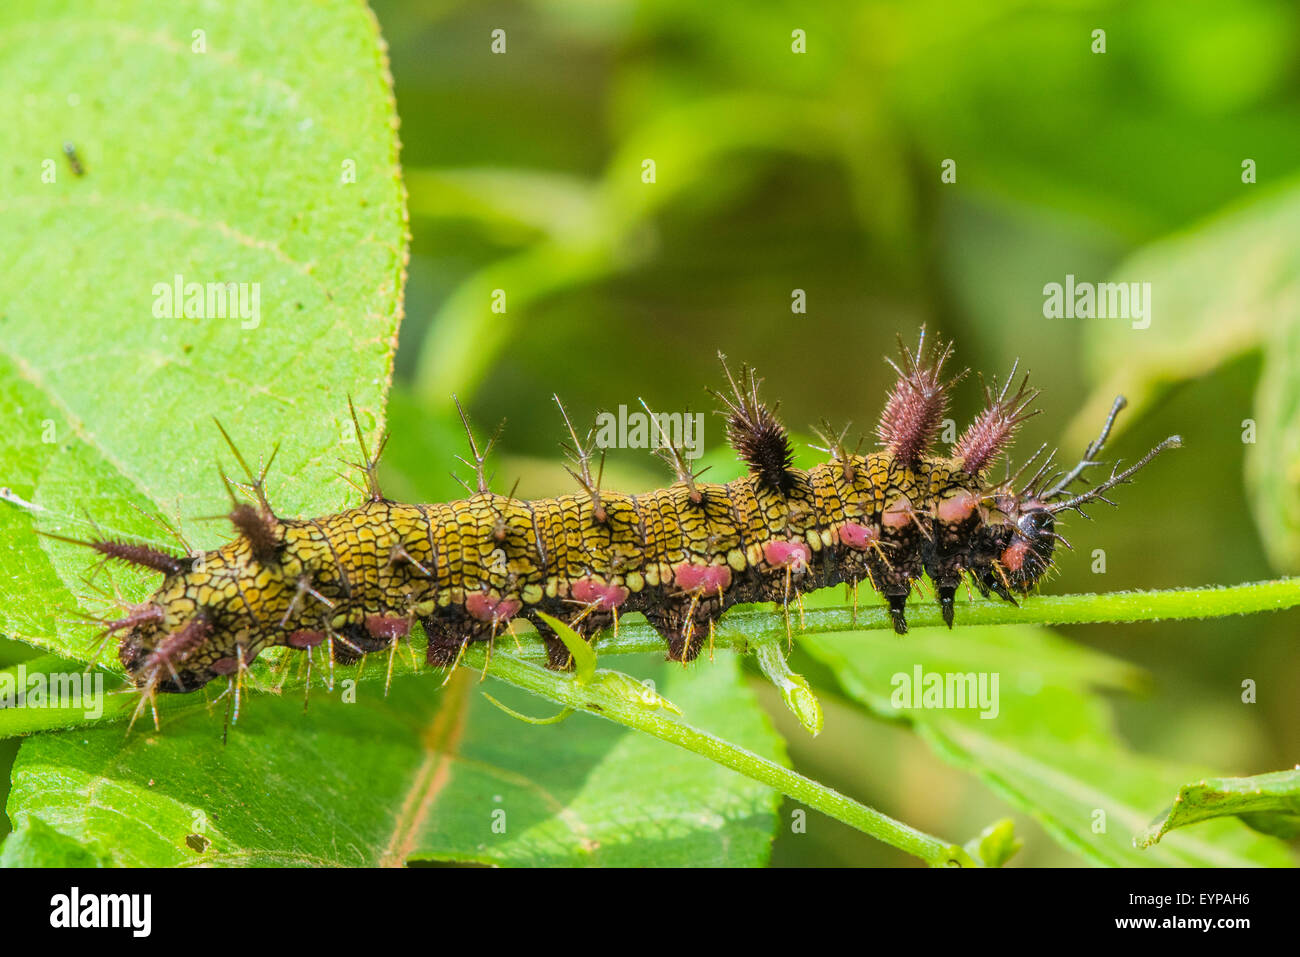 A caterpillar of the Variable Cracker butterfly - Stock Image